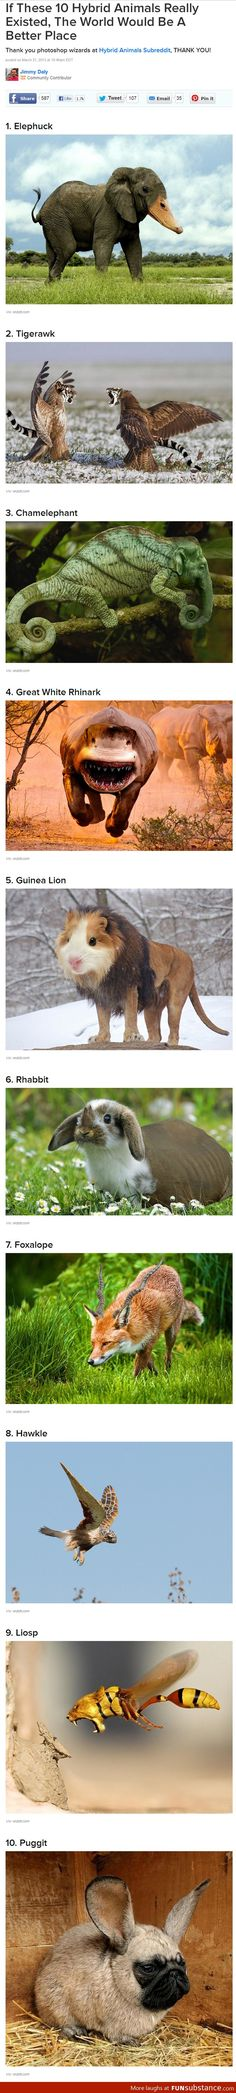 If these animals existed